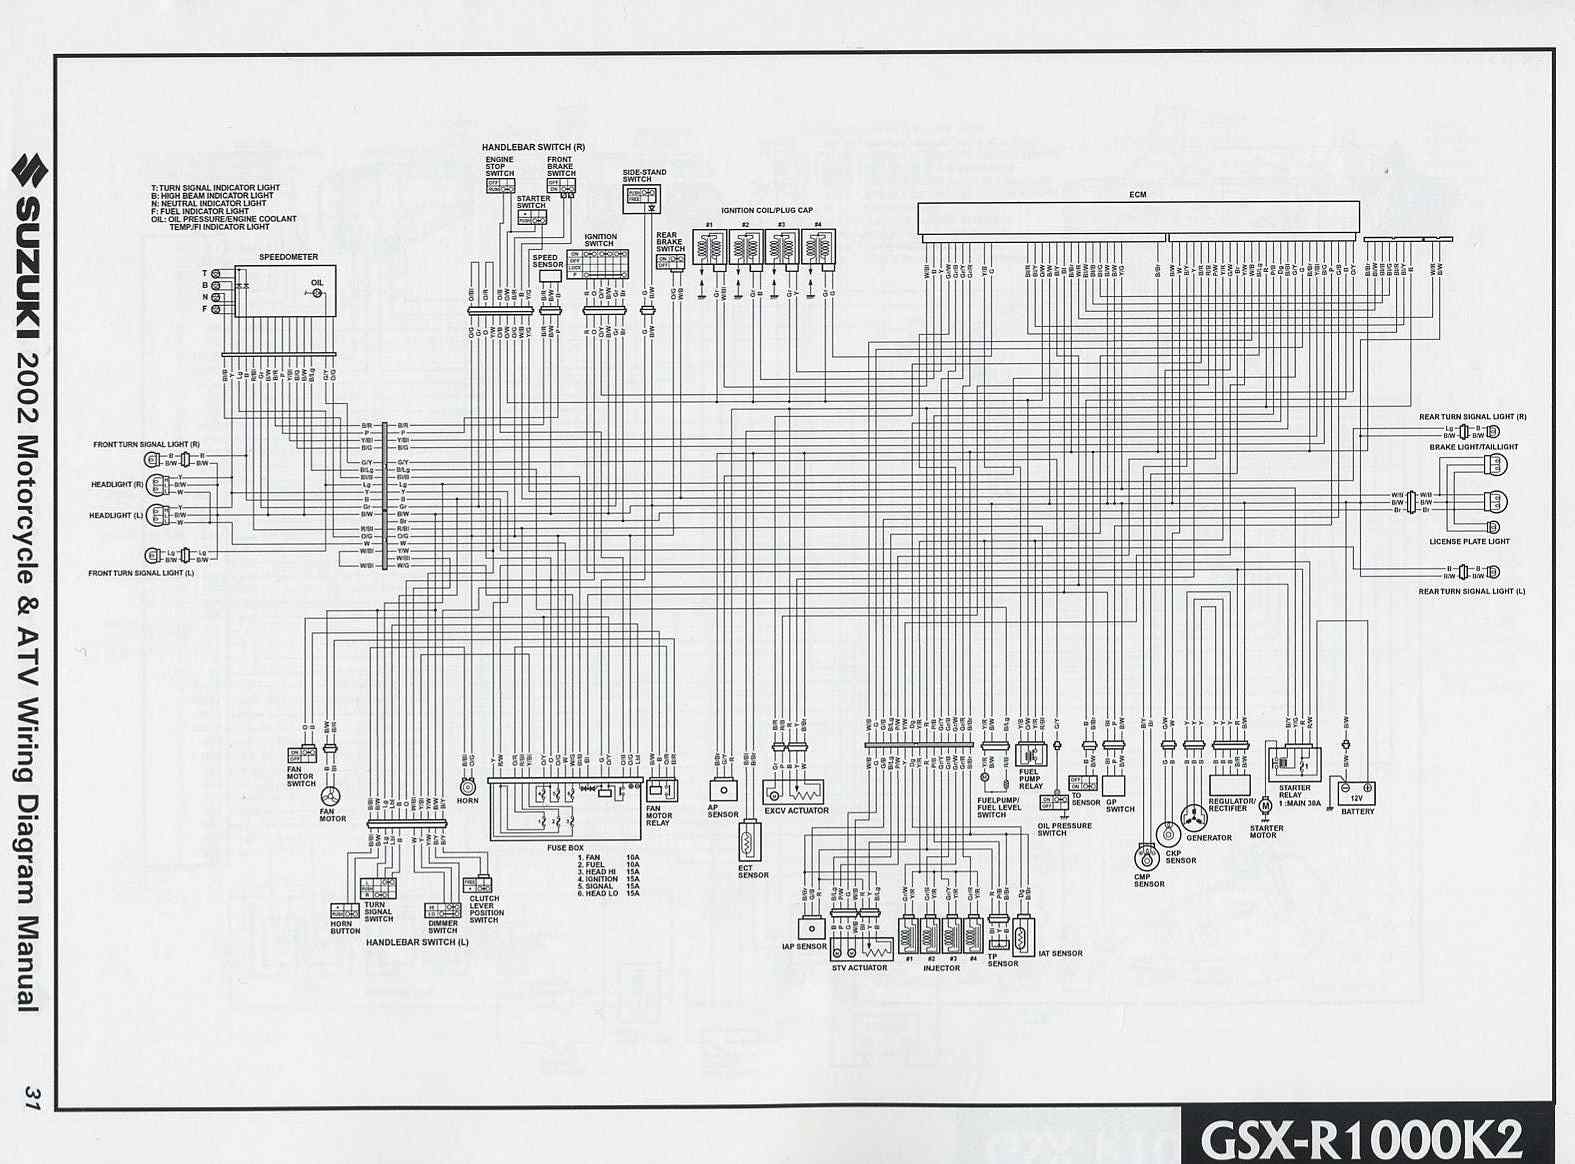 2002 gsxr 1000 wiring diagram honda wiring diagrams 2007 gsxr 1000 wiring diagram ignition